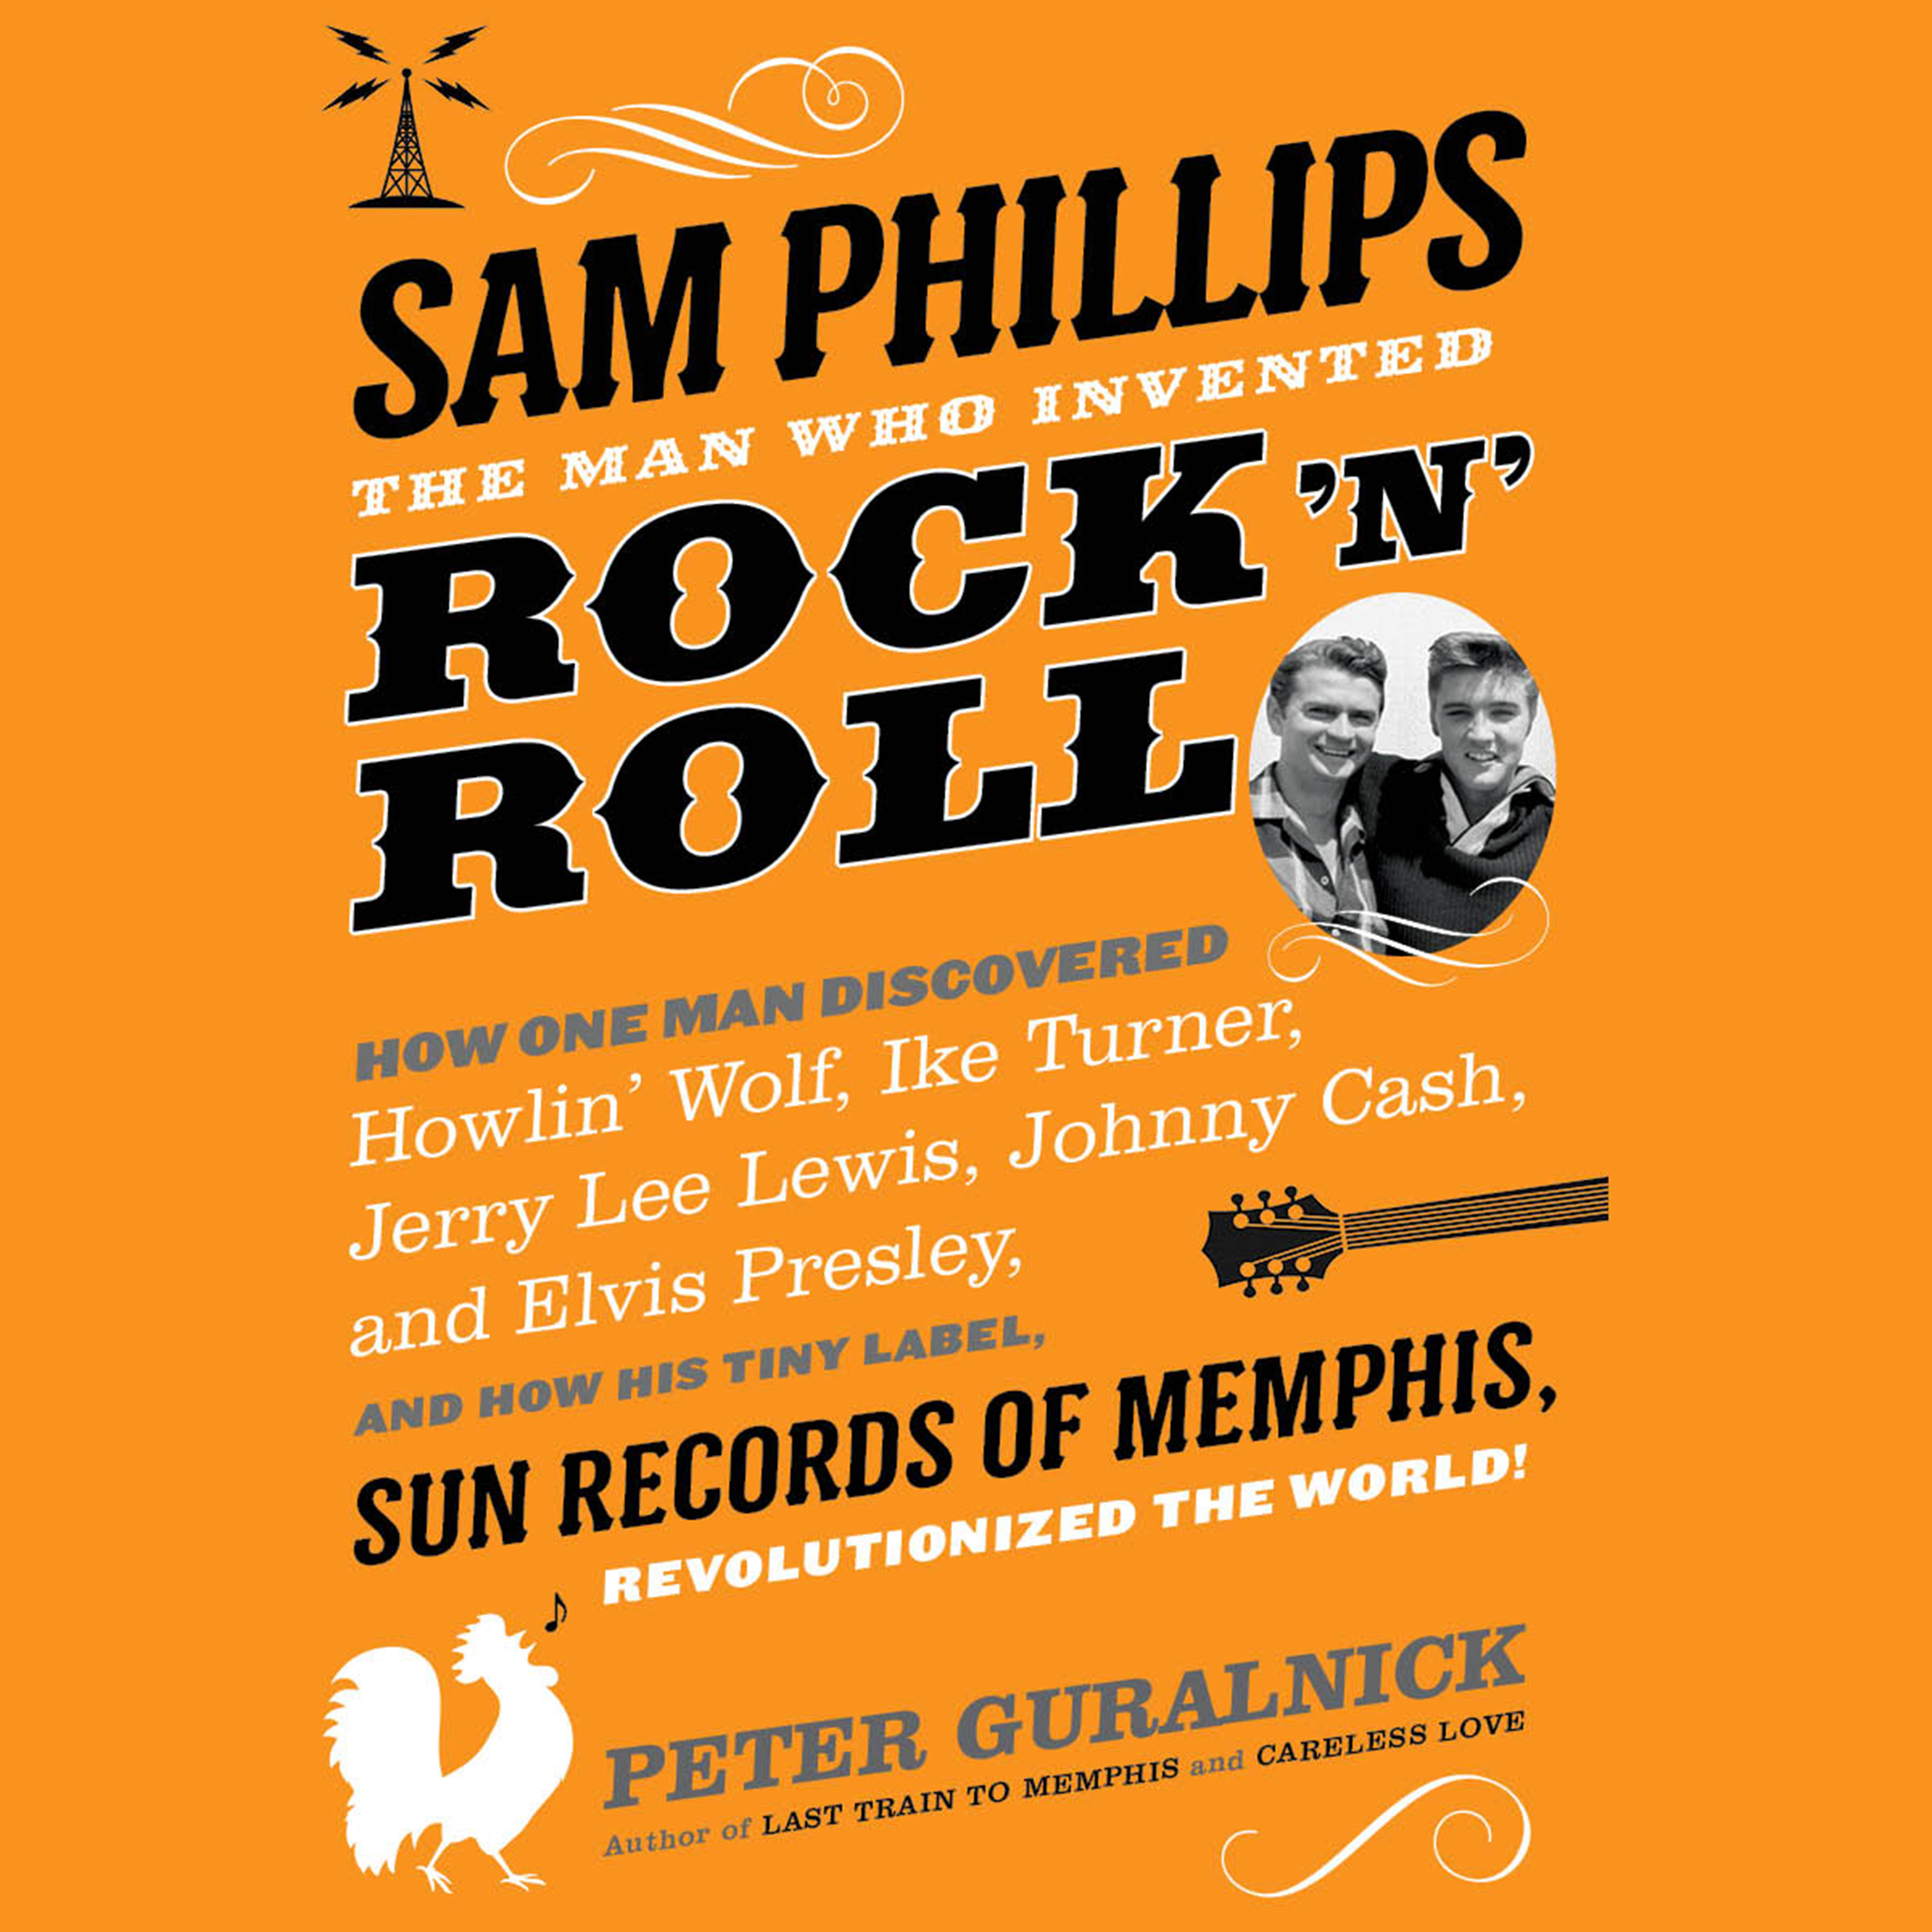 Peter Guralnick's Sam Phillips biography